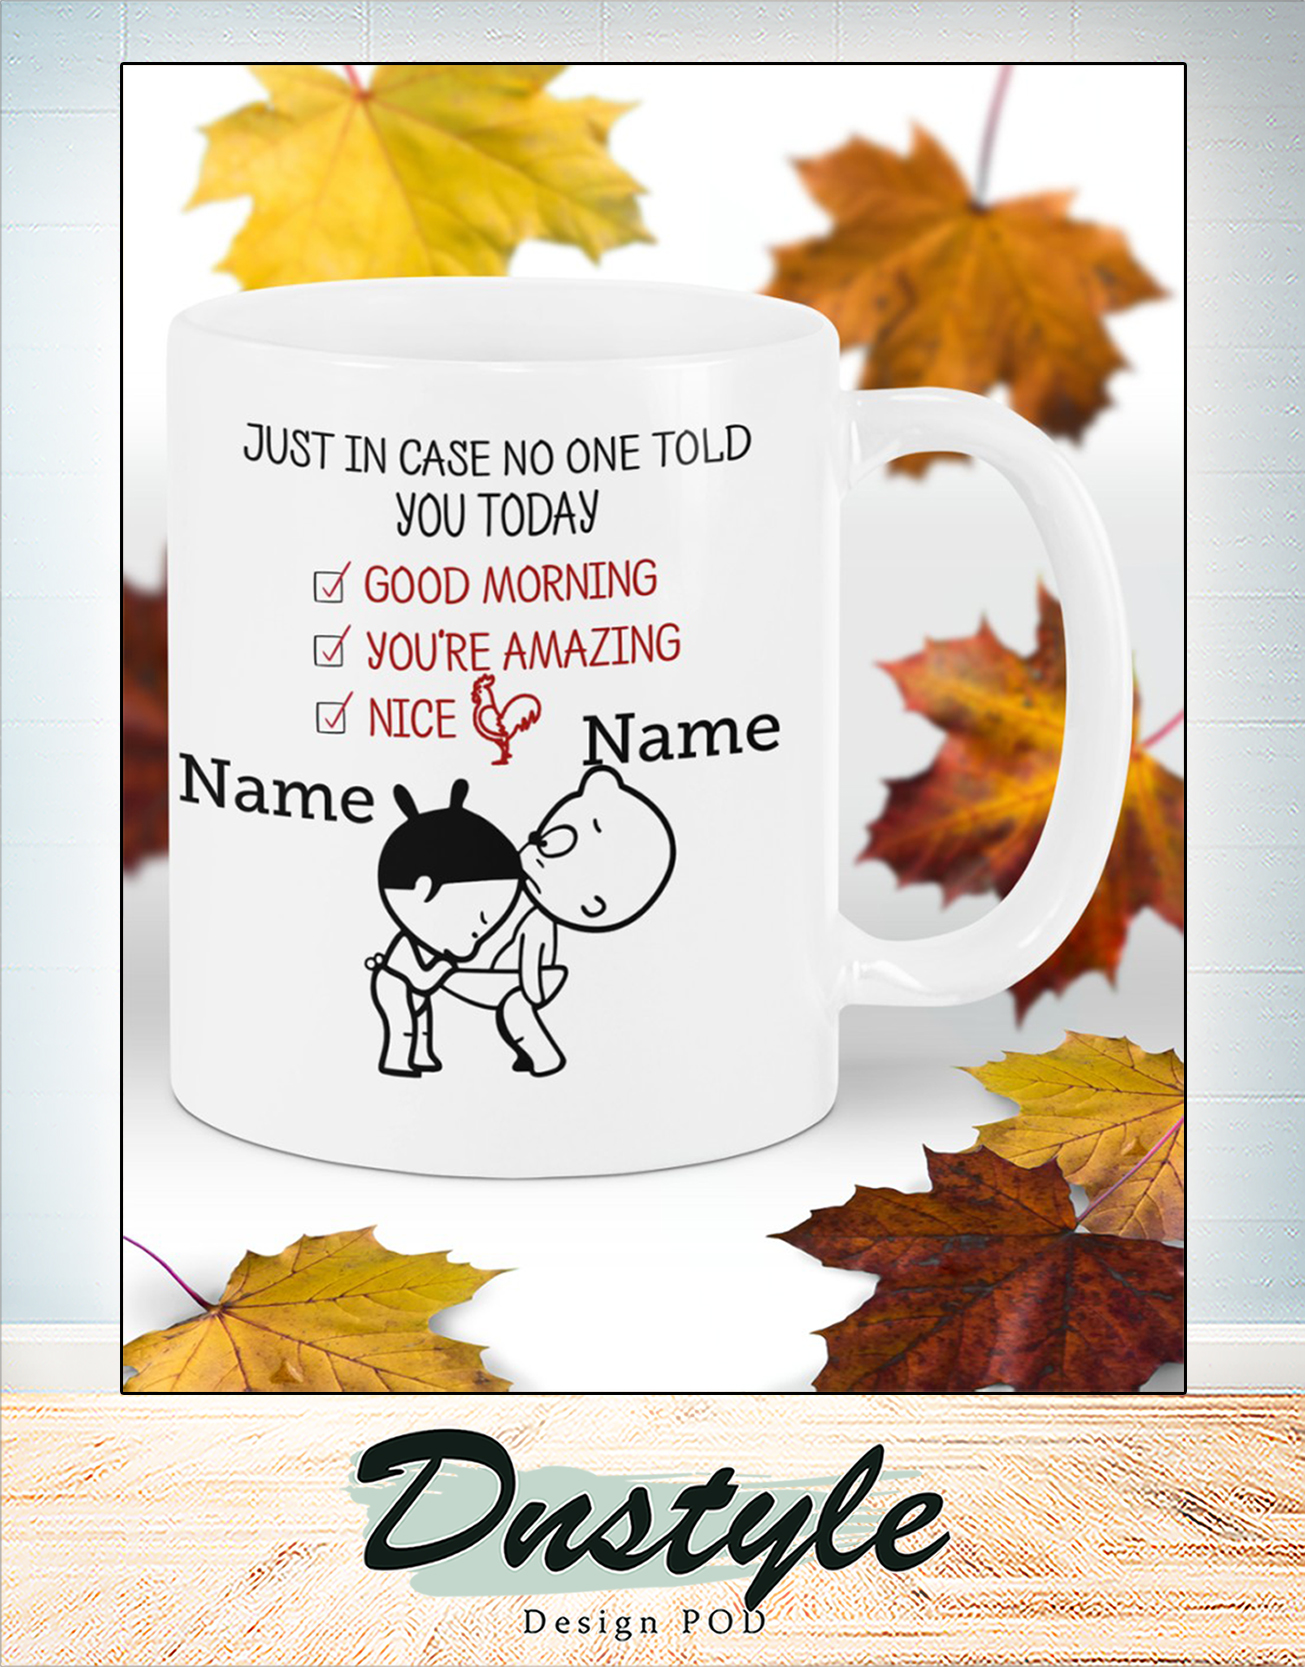 Personalized custom name just in case no one told you today mug 2